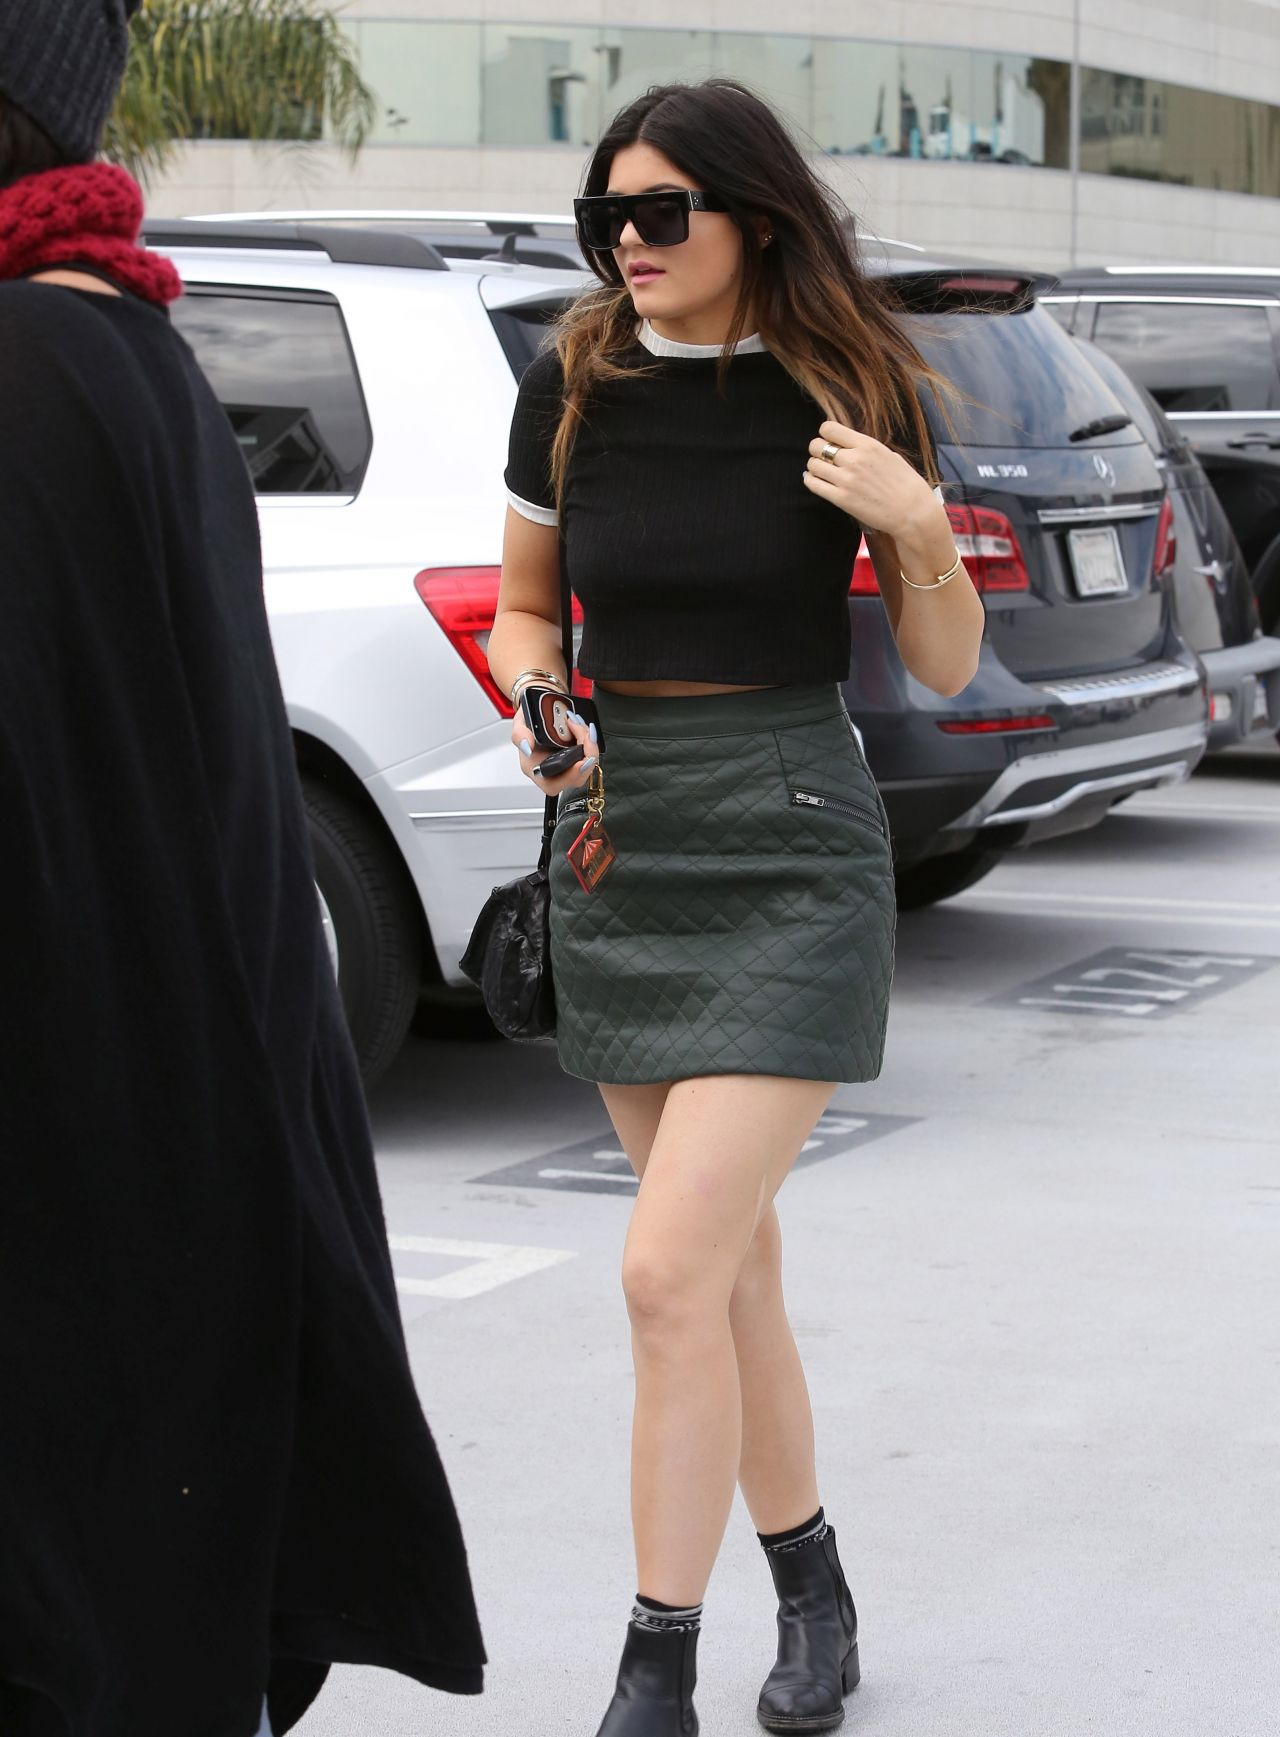 Kylie Jenner Street Style  Shopping in West Hollywood  December 2013